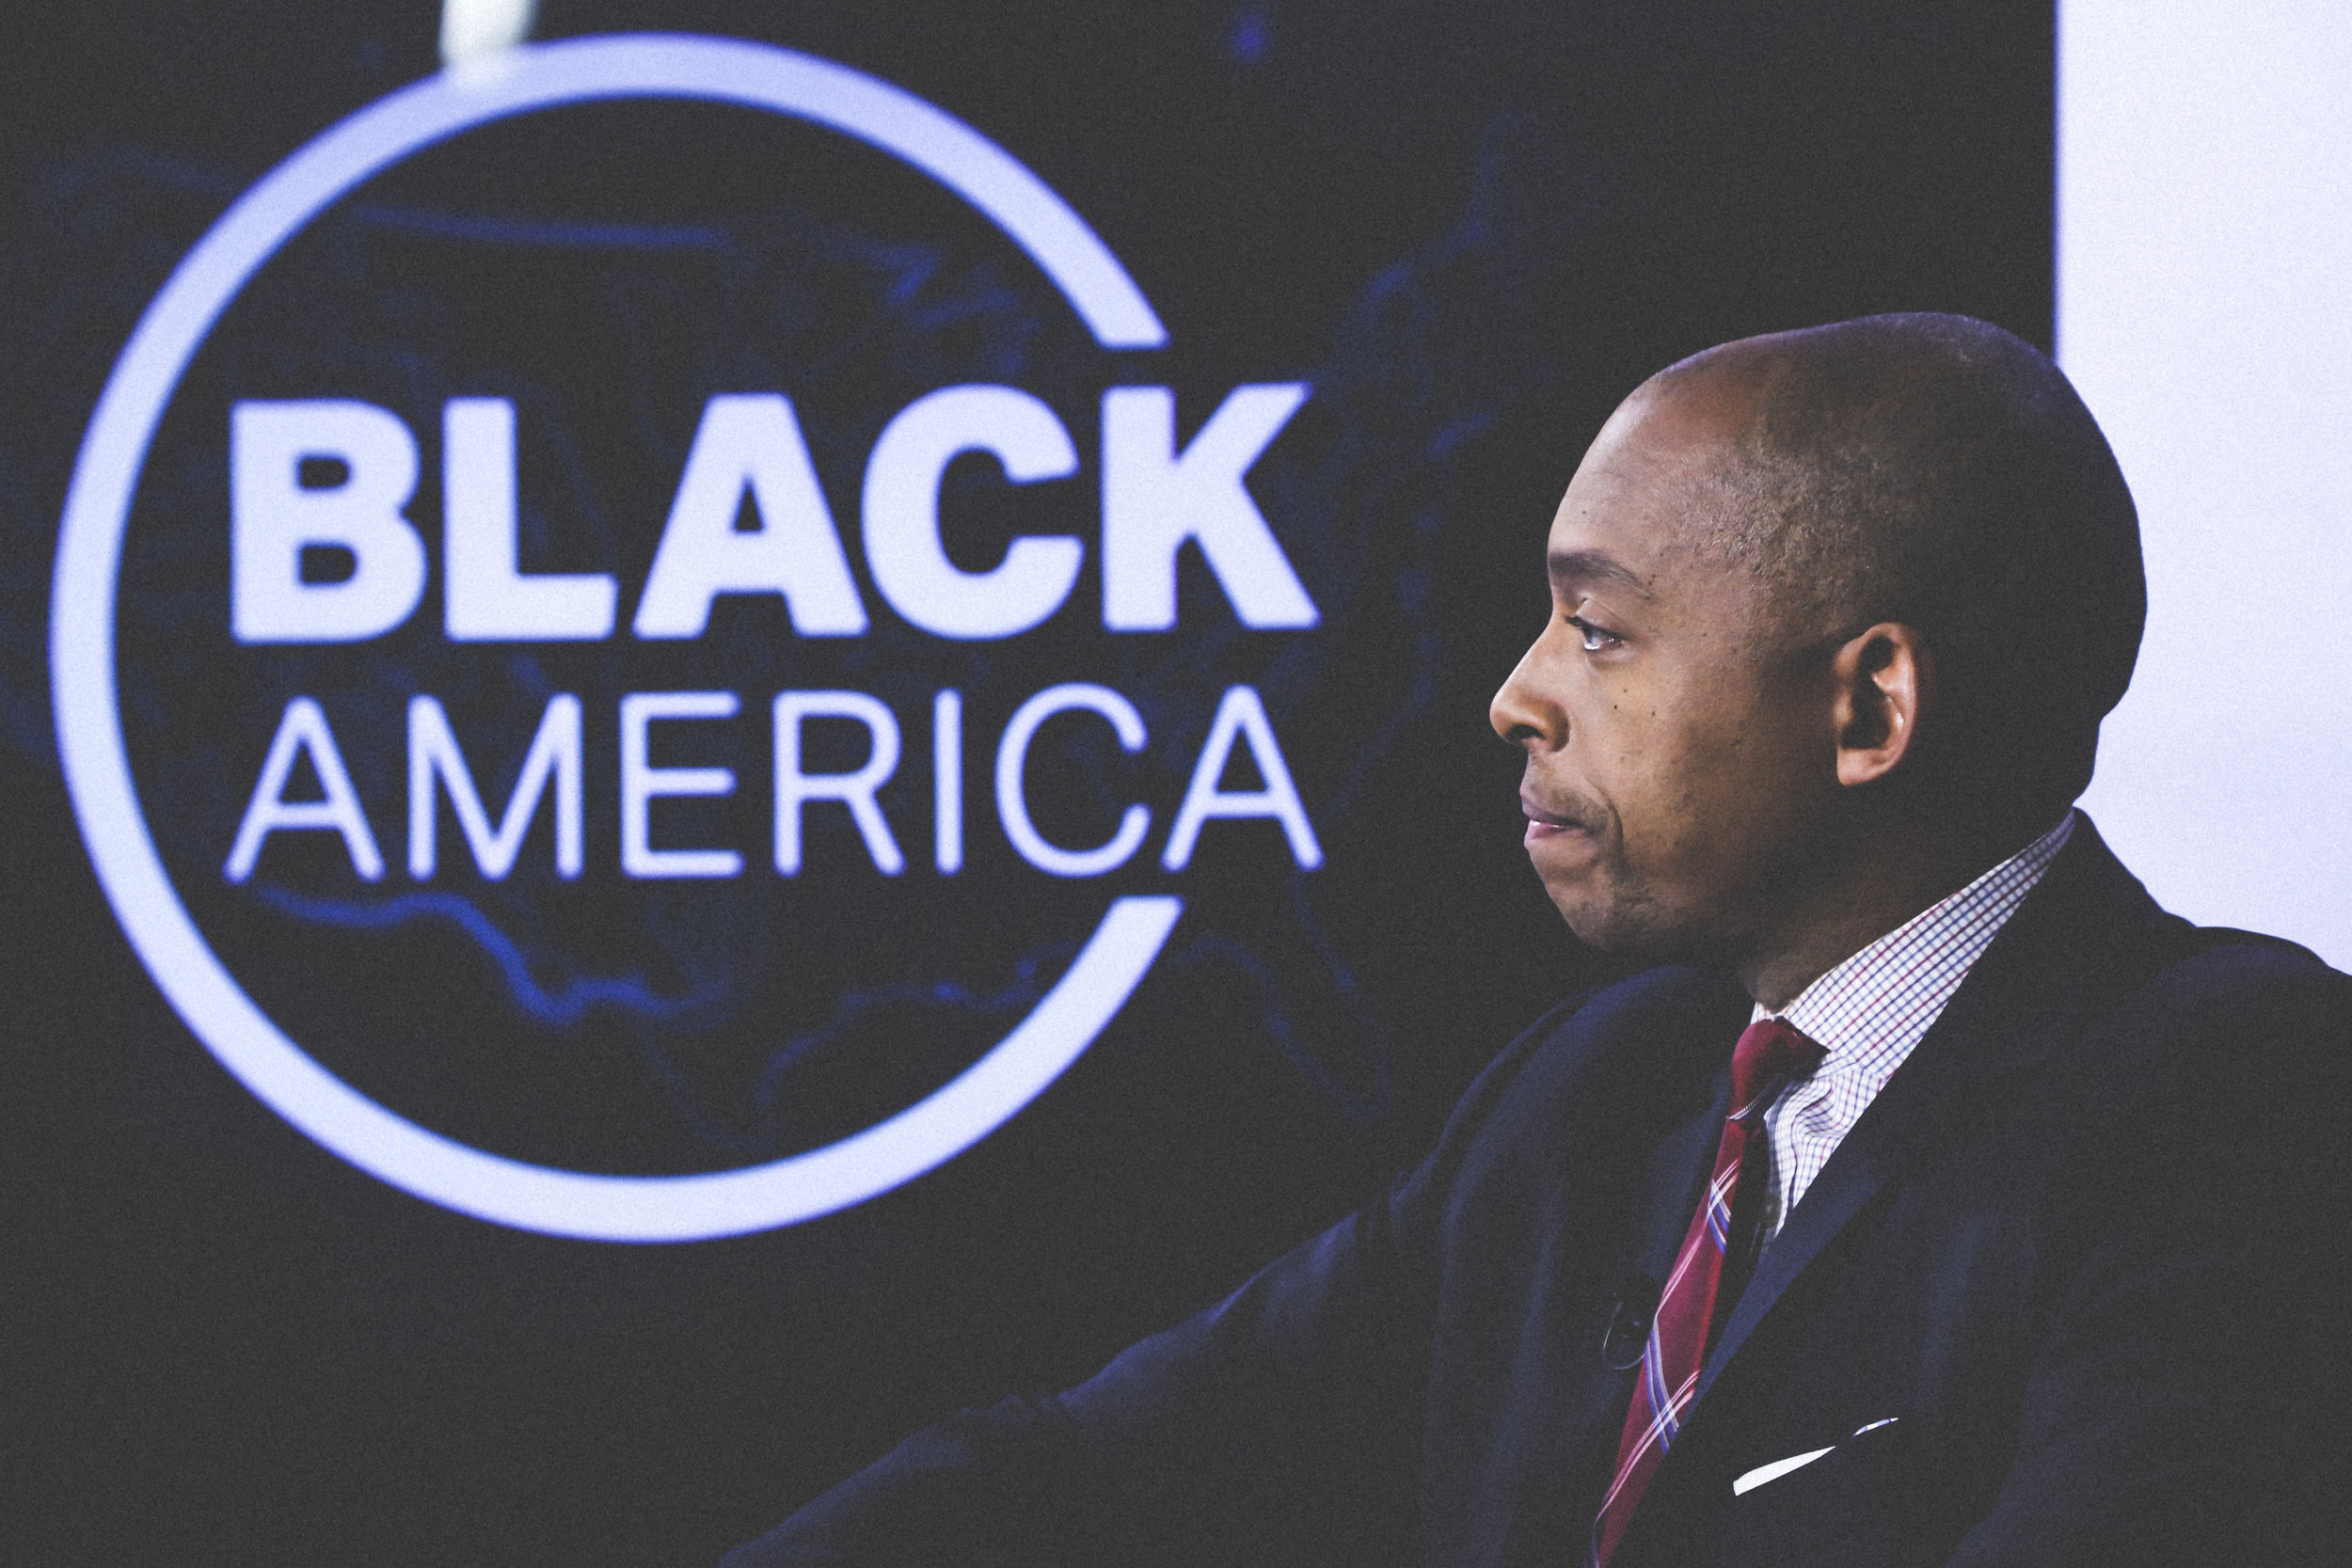 DR. KHALIL GIBRAN MUHAMMAD  Director, Schomburg Center for Research in Black Culture   https://youtu.be/D8f913cn3_E